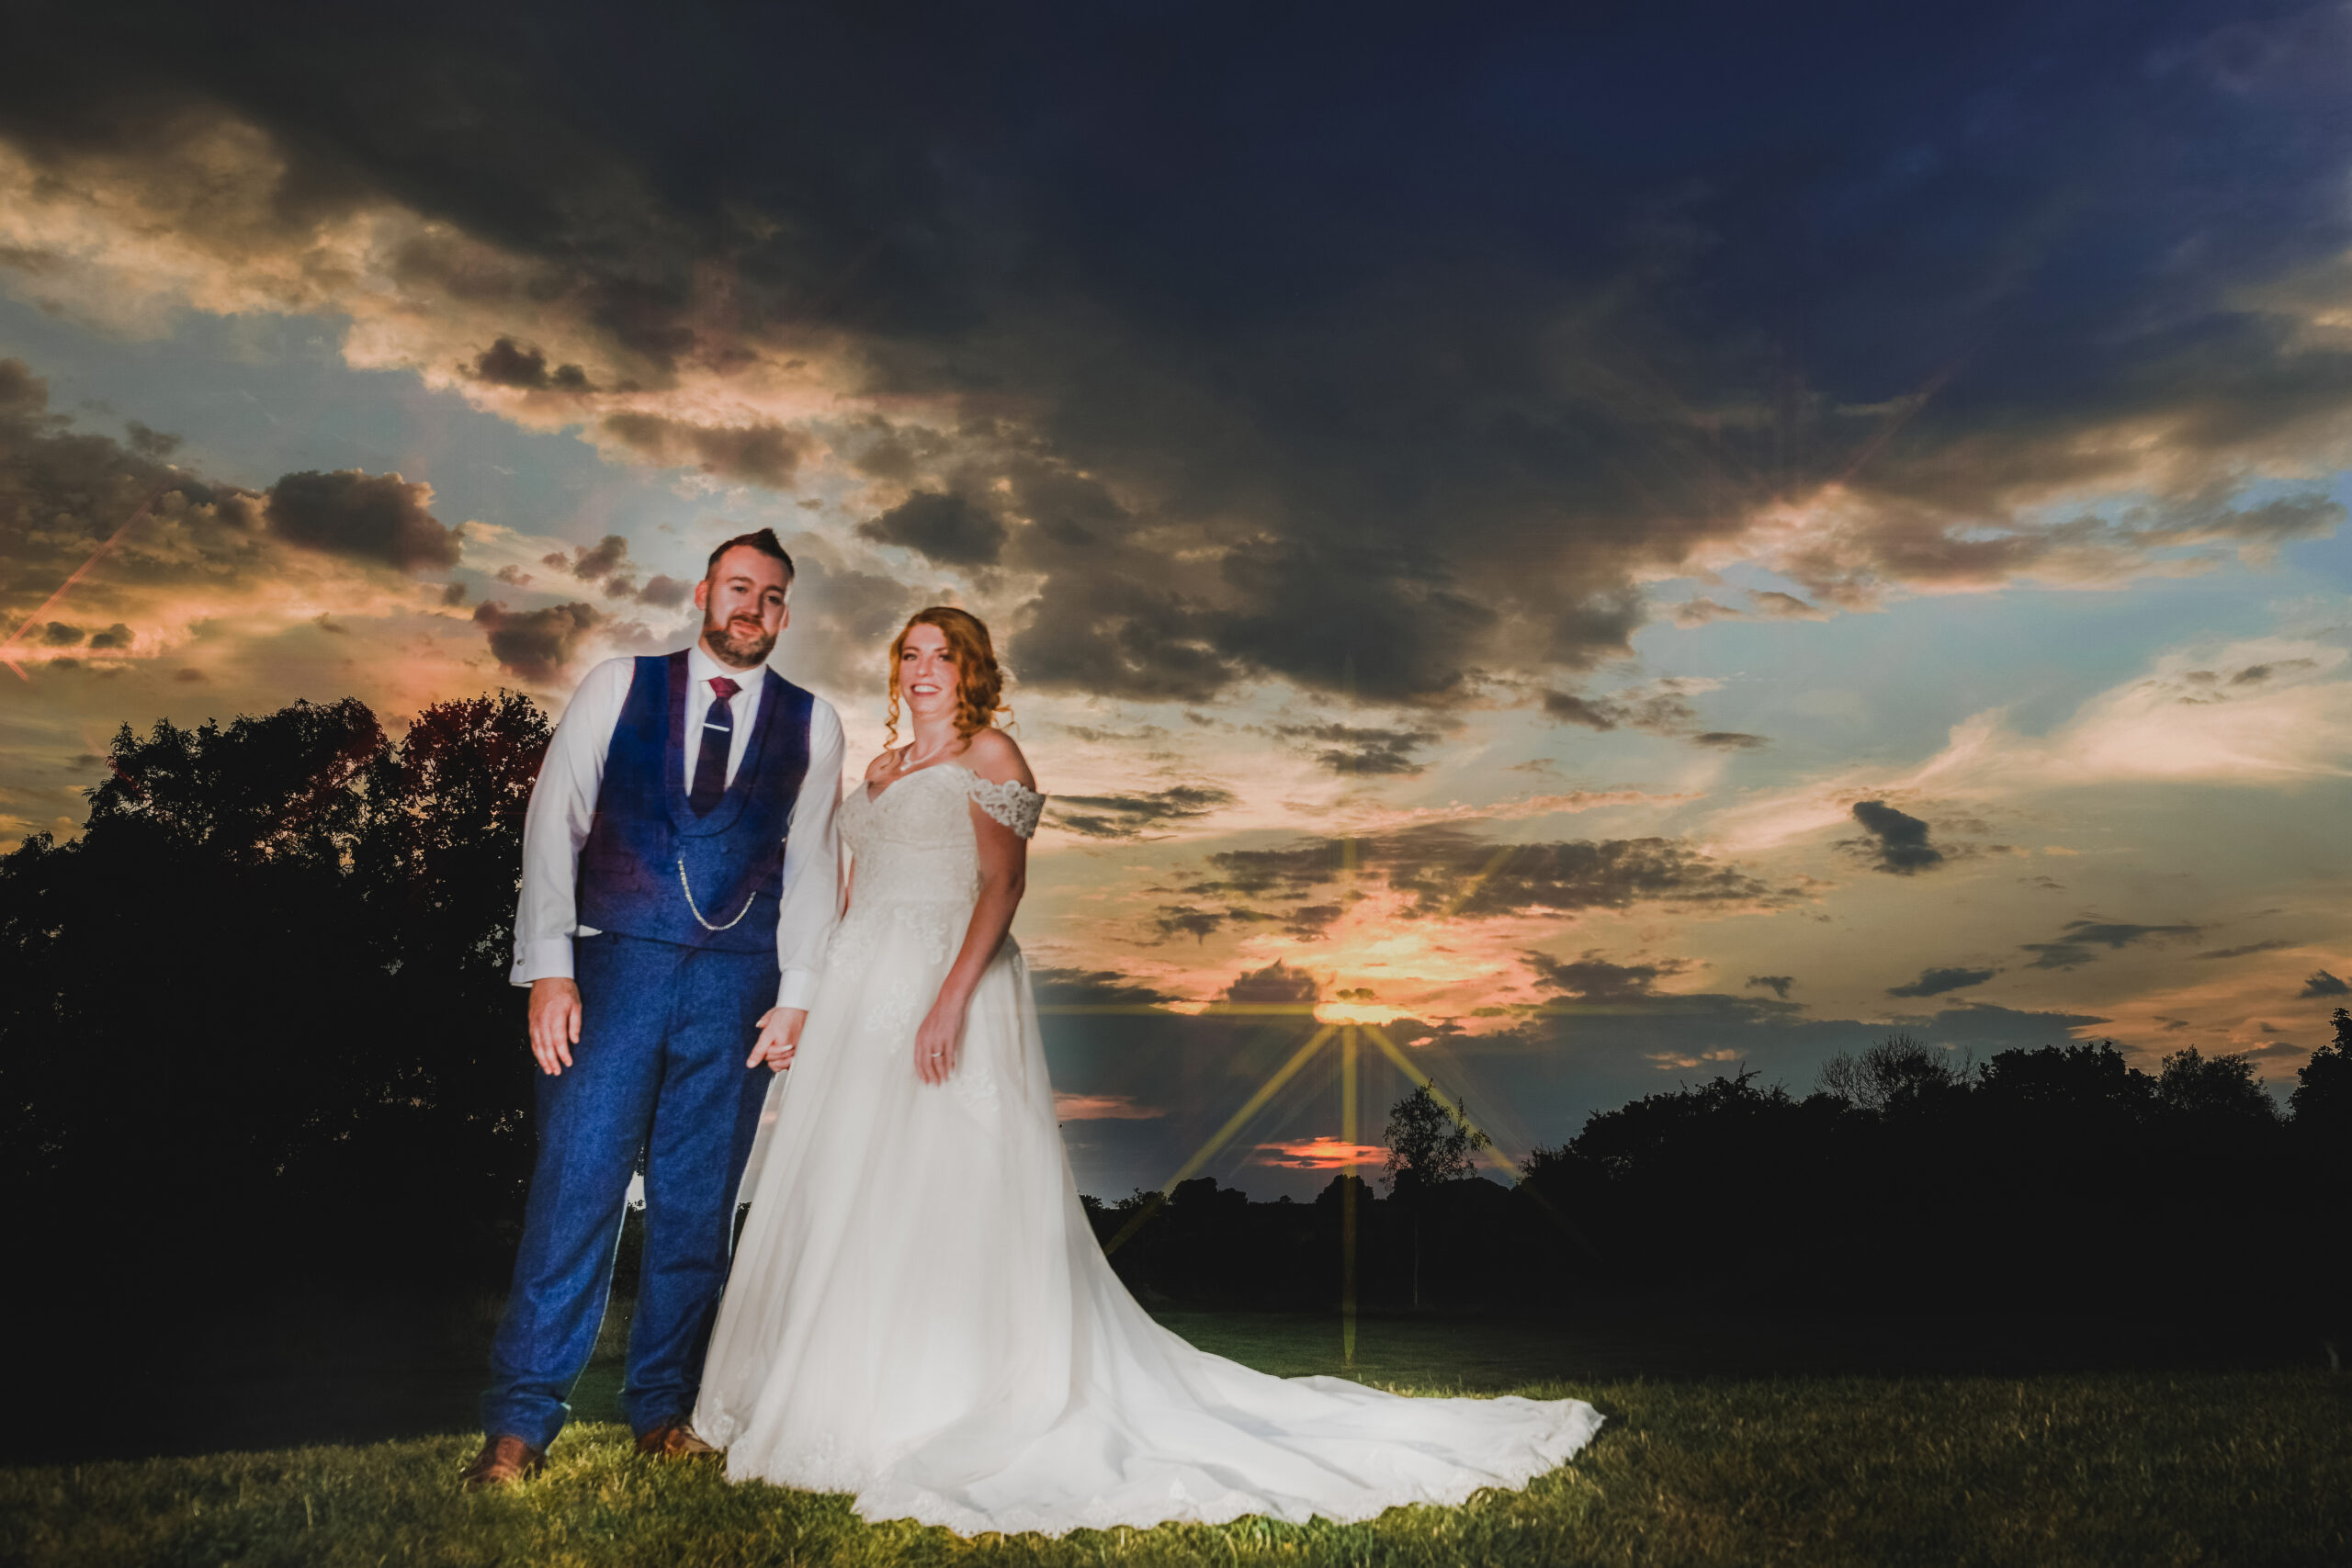 Sunset Wedding Photography at Wootton Park